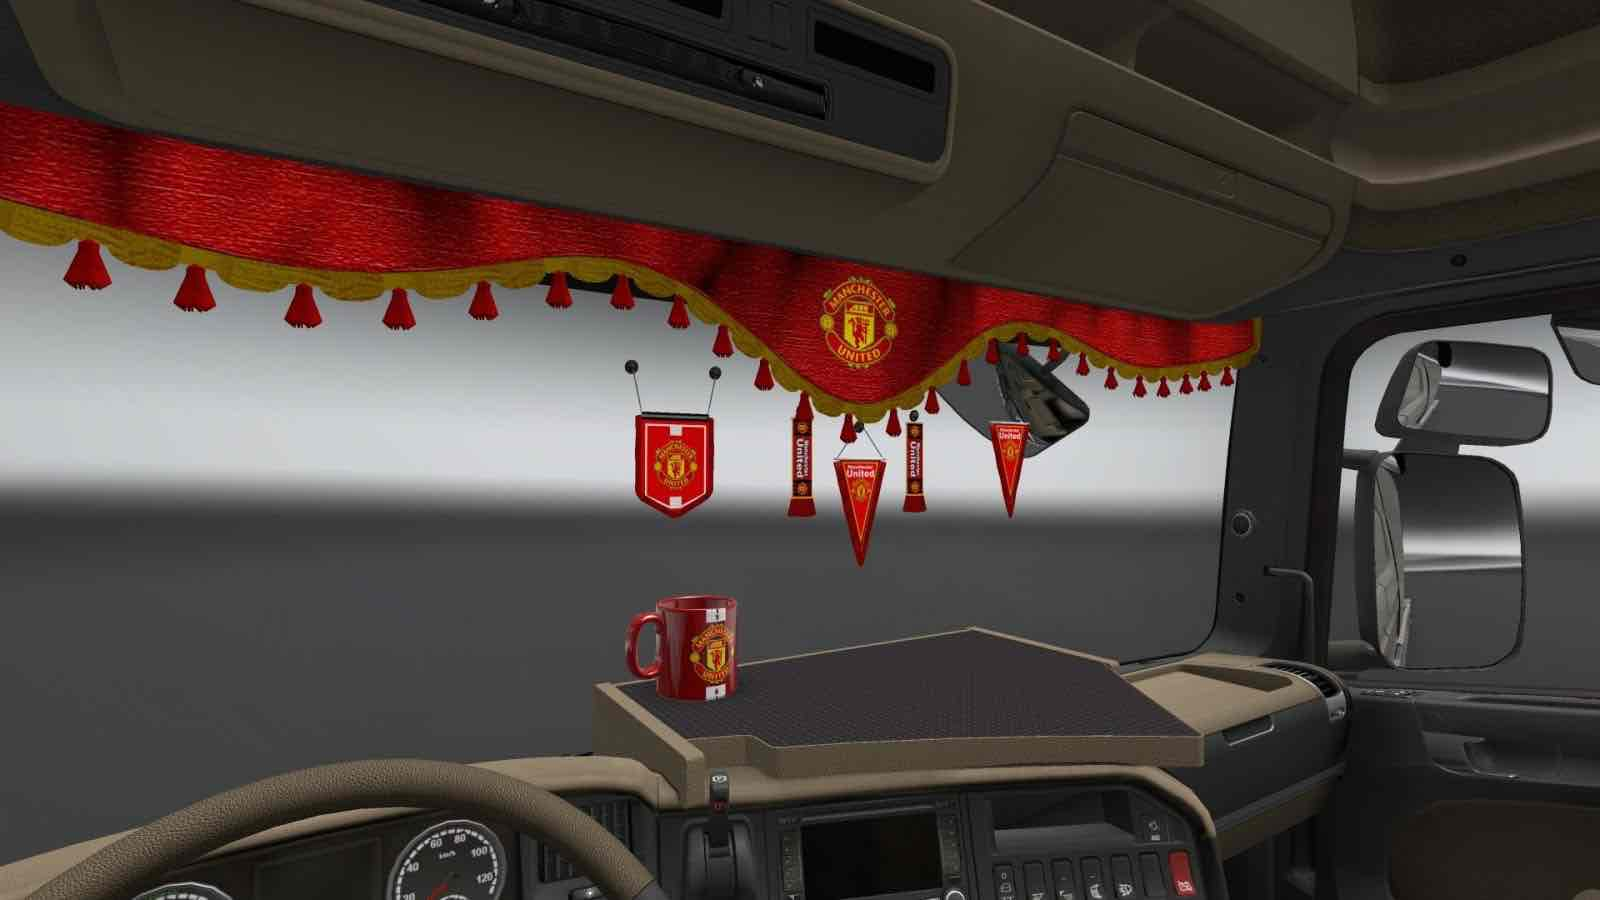 Manchester United Football Club decorations for trucks ETS2 Mod for Euro Truck Simulator 2